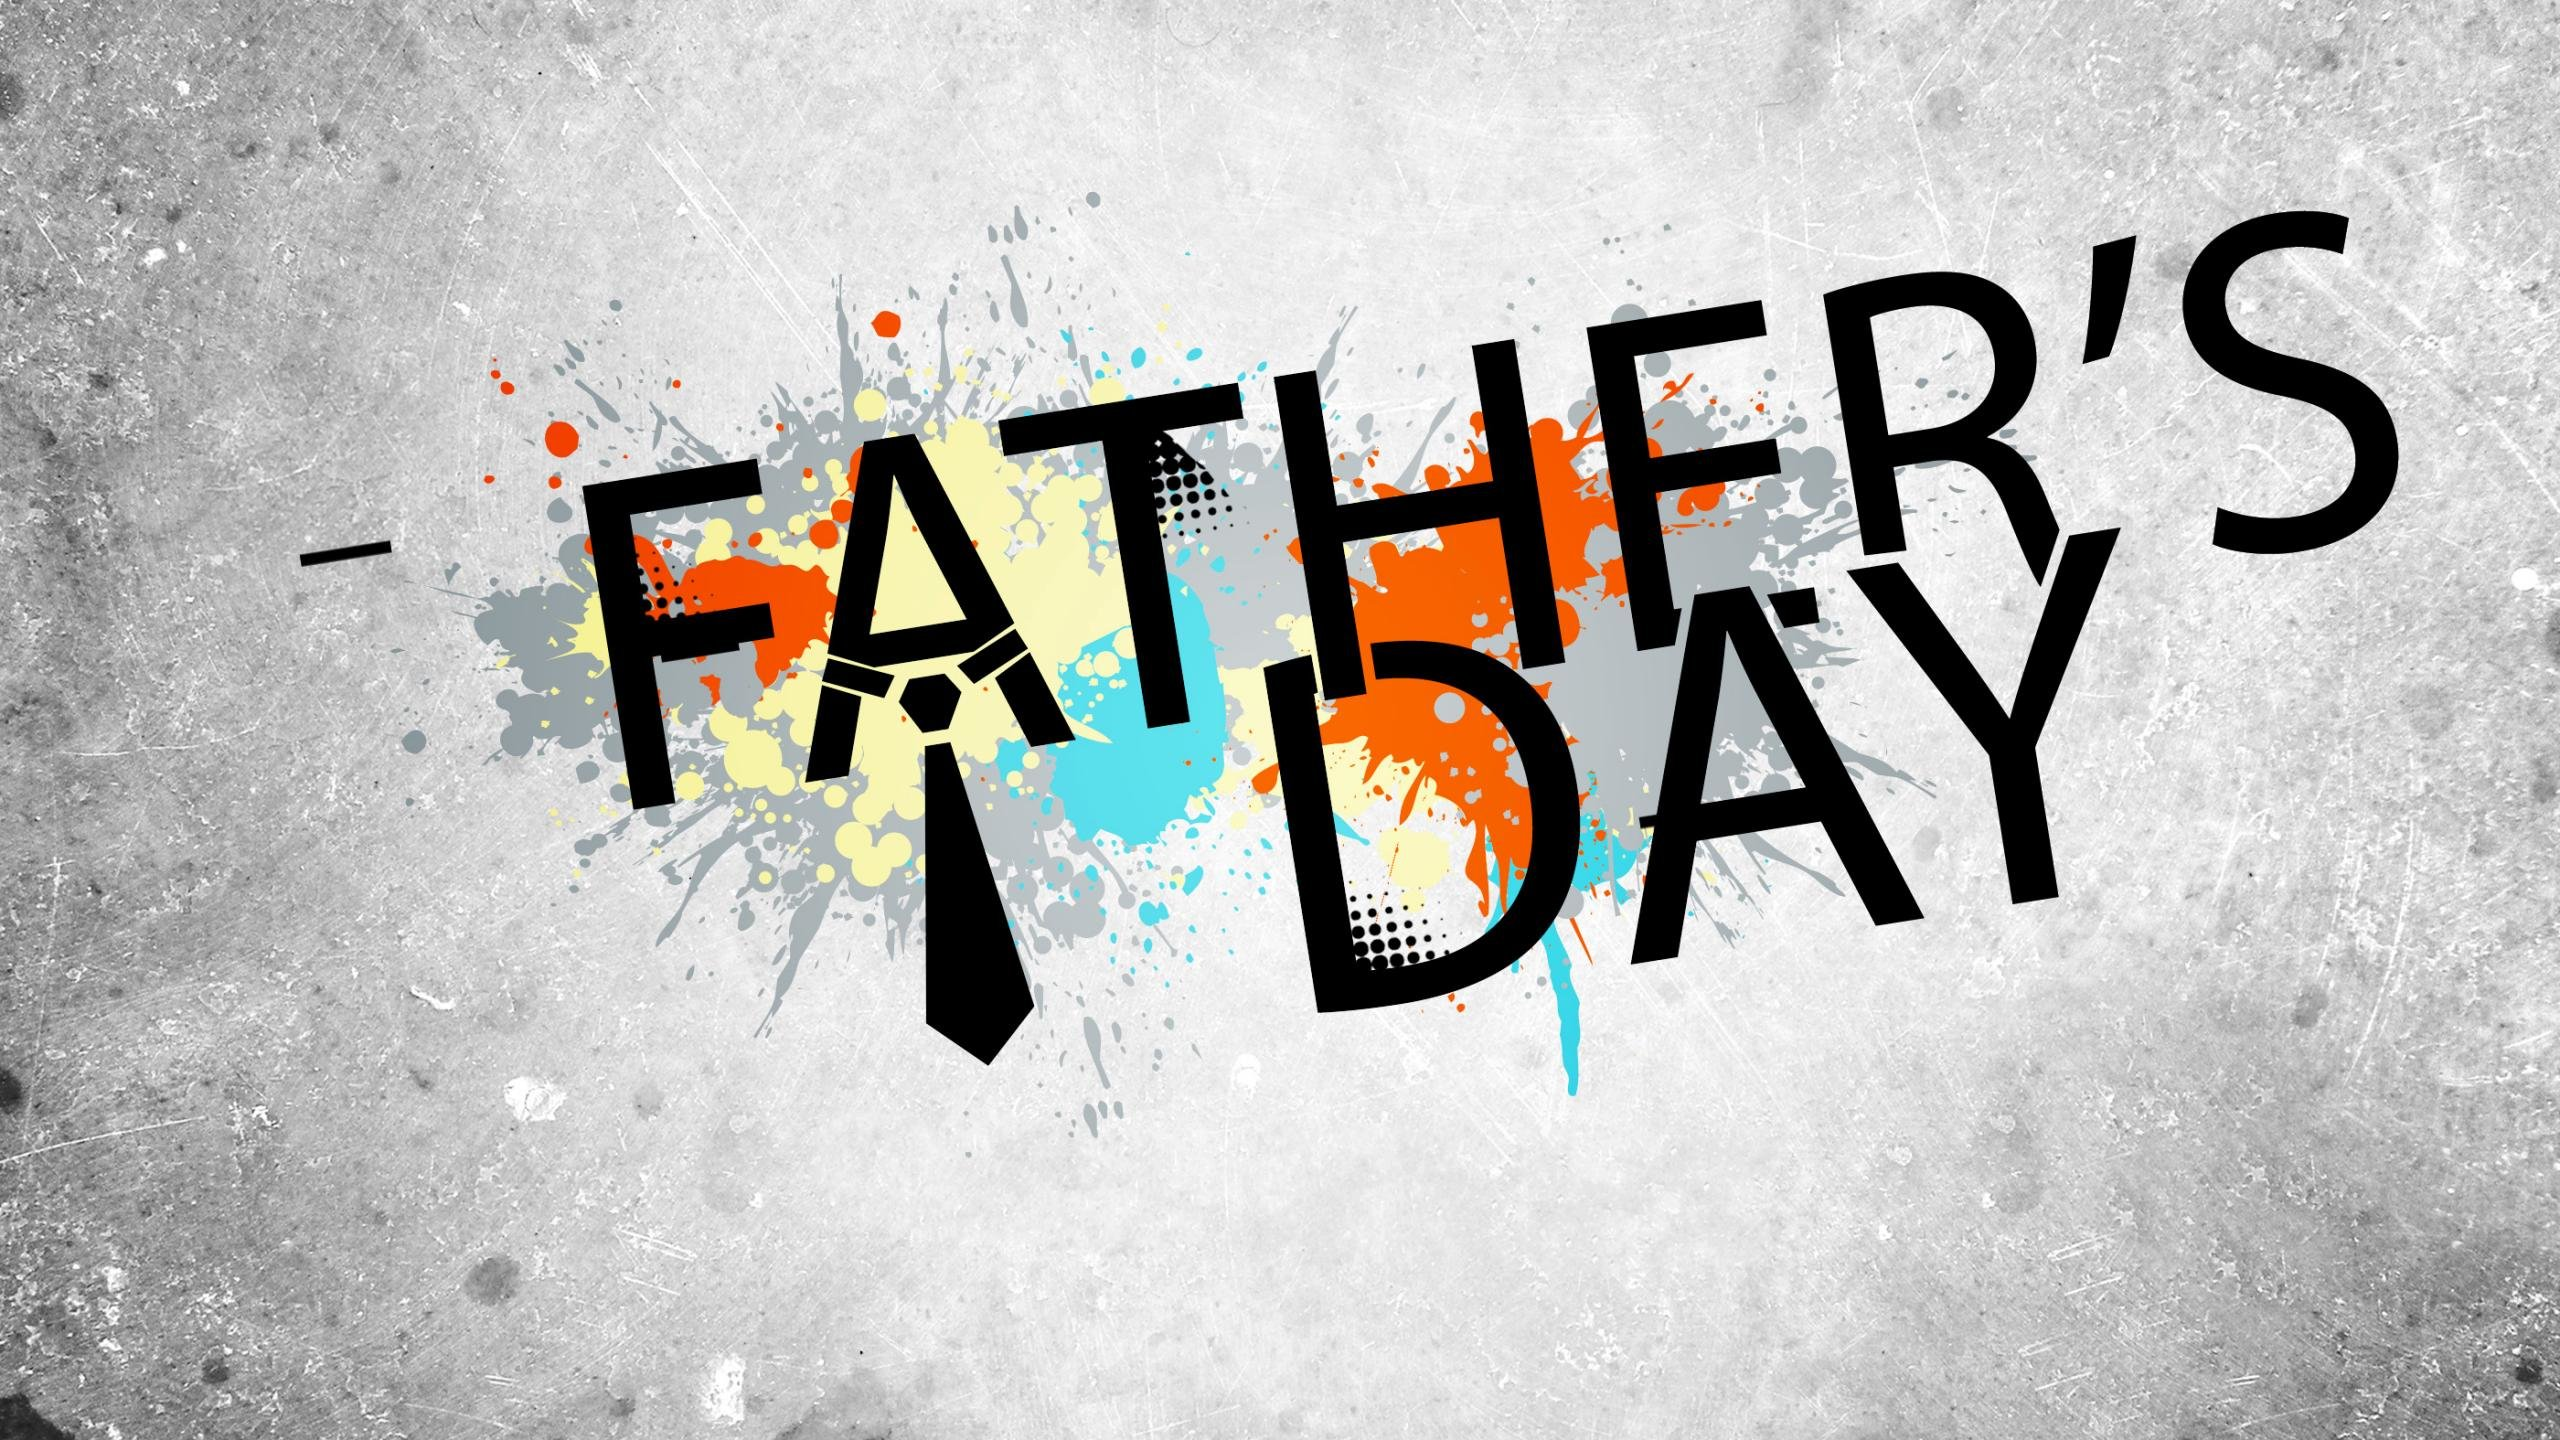 Download Hd 2560x1440 Fathers Day Computer Wallpaper Id